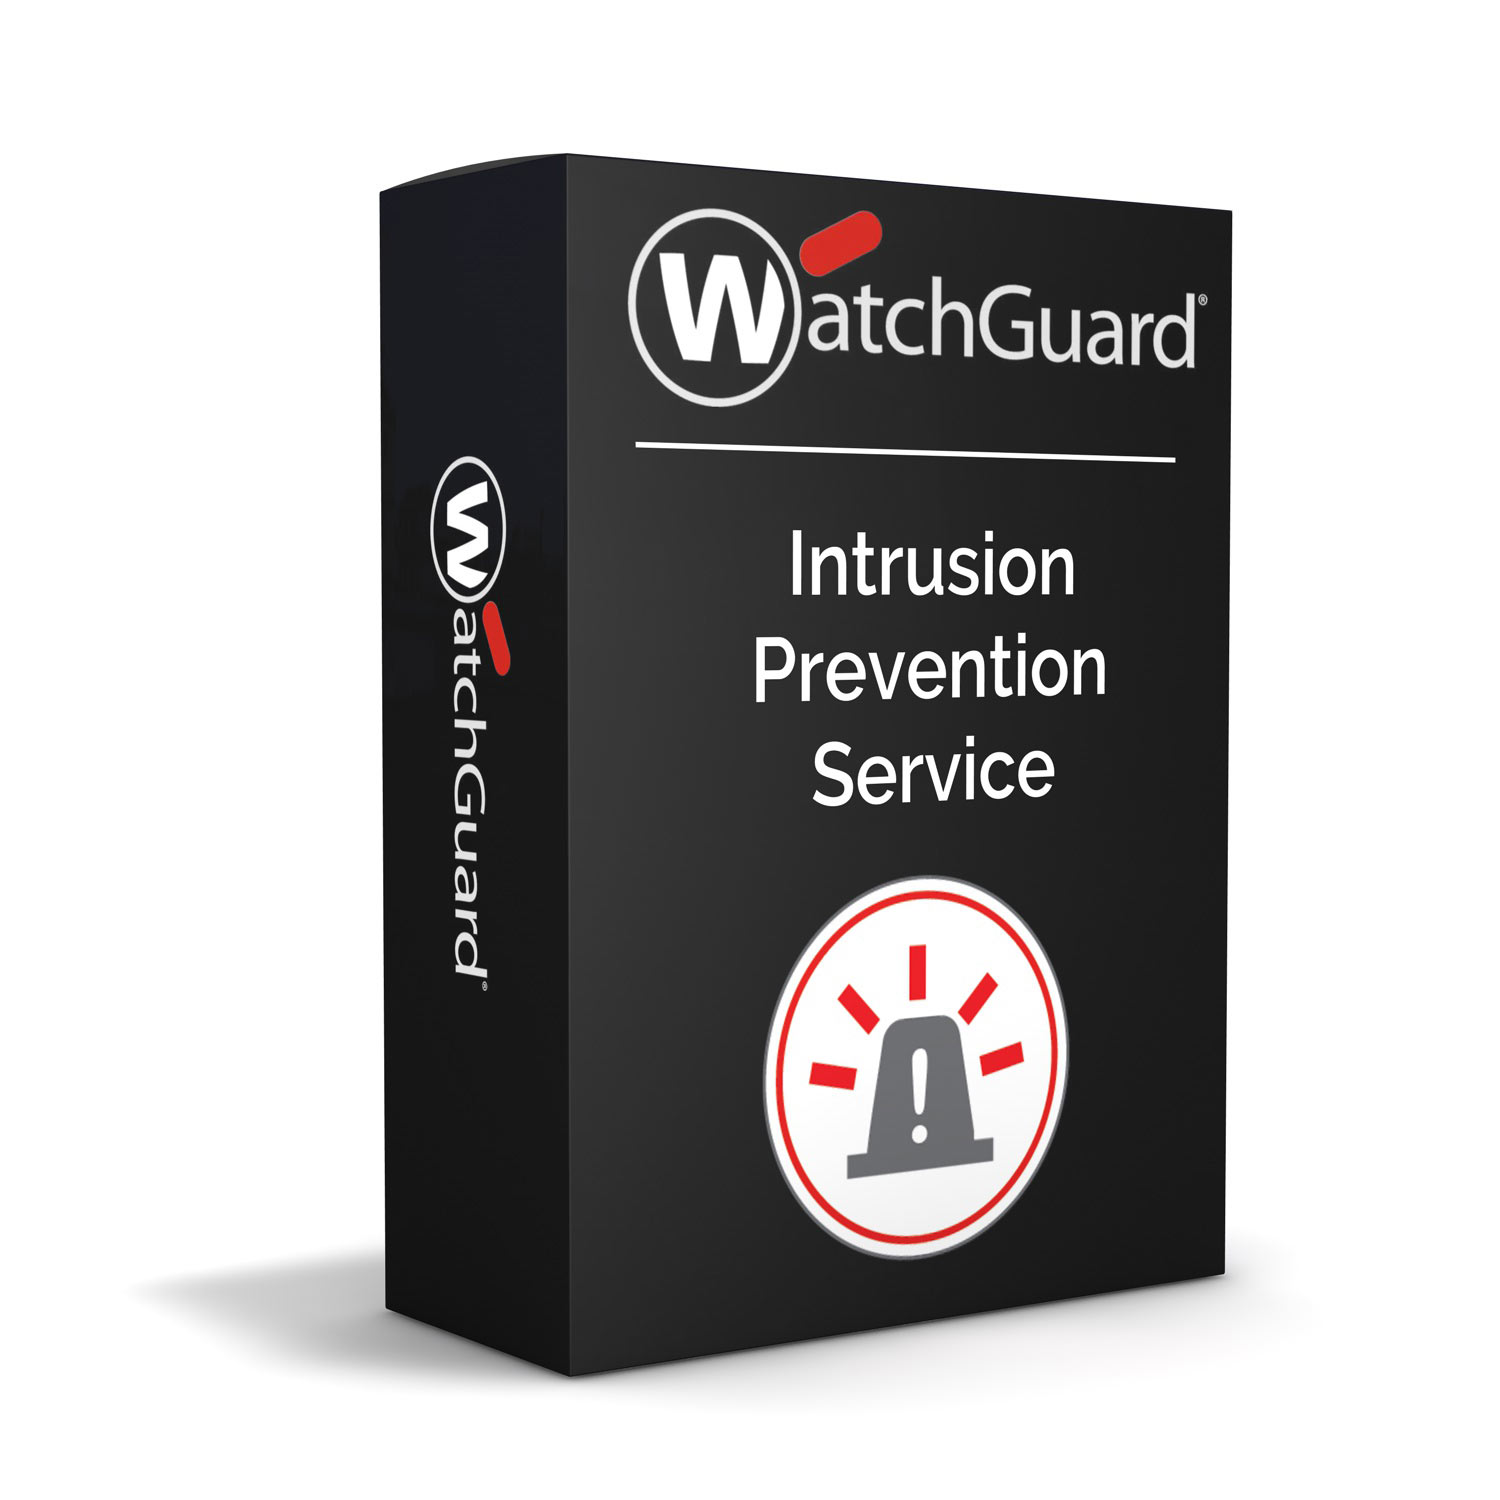 WatchGuard Intrusion Prevention Service 1-yr for Firebox T10 Models